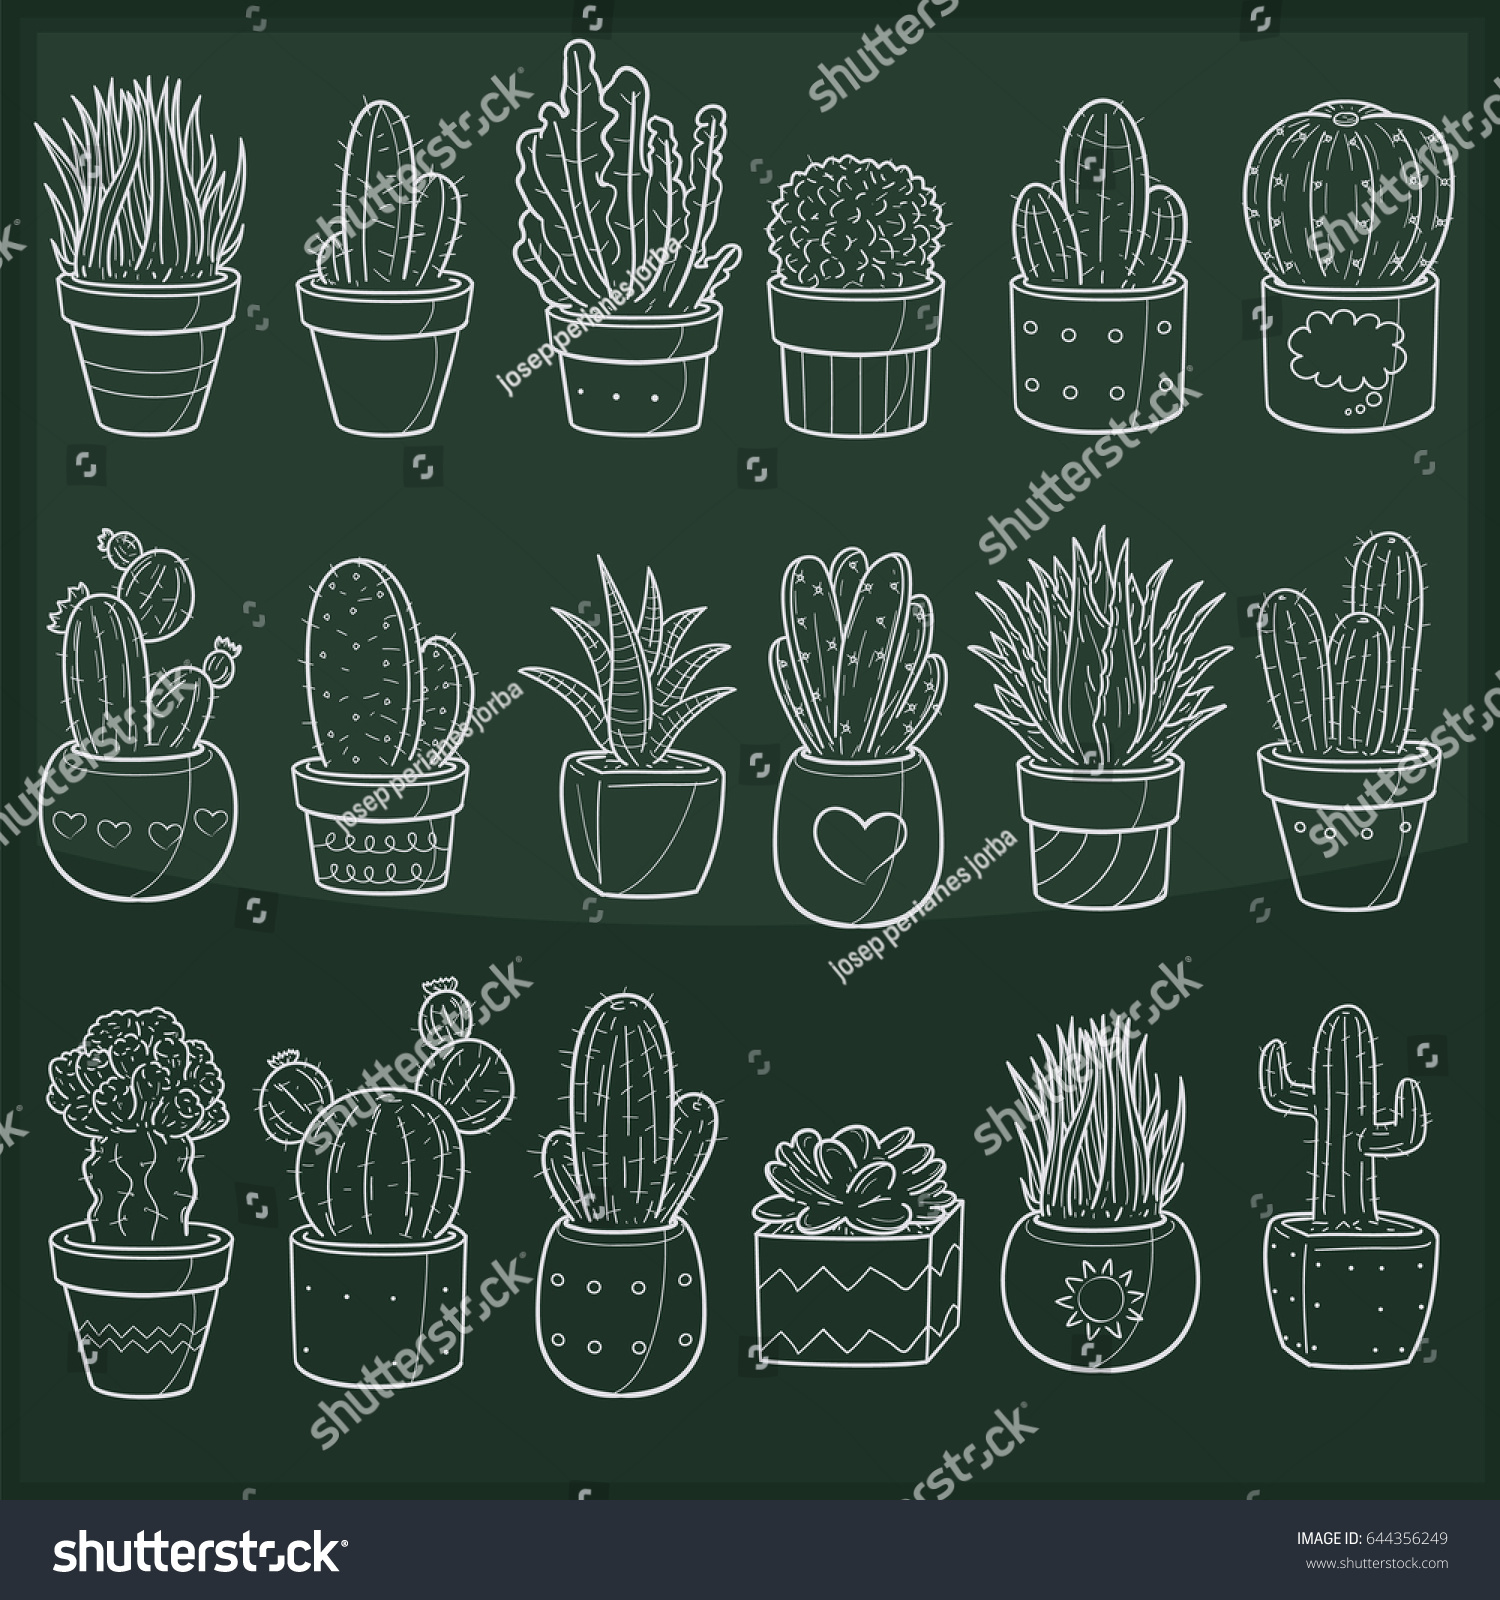 Cactus Succulent Plant Doodle Icon Chalkboard Stock Vector Royalty Free 644356249